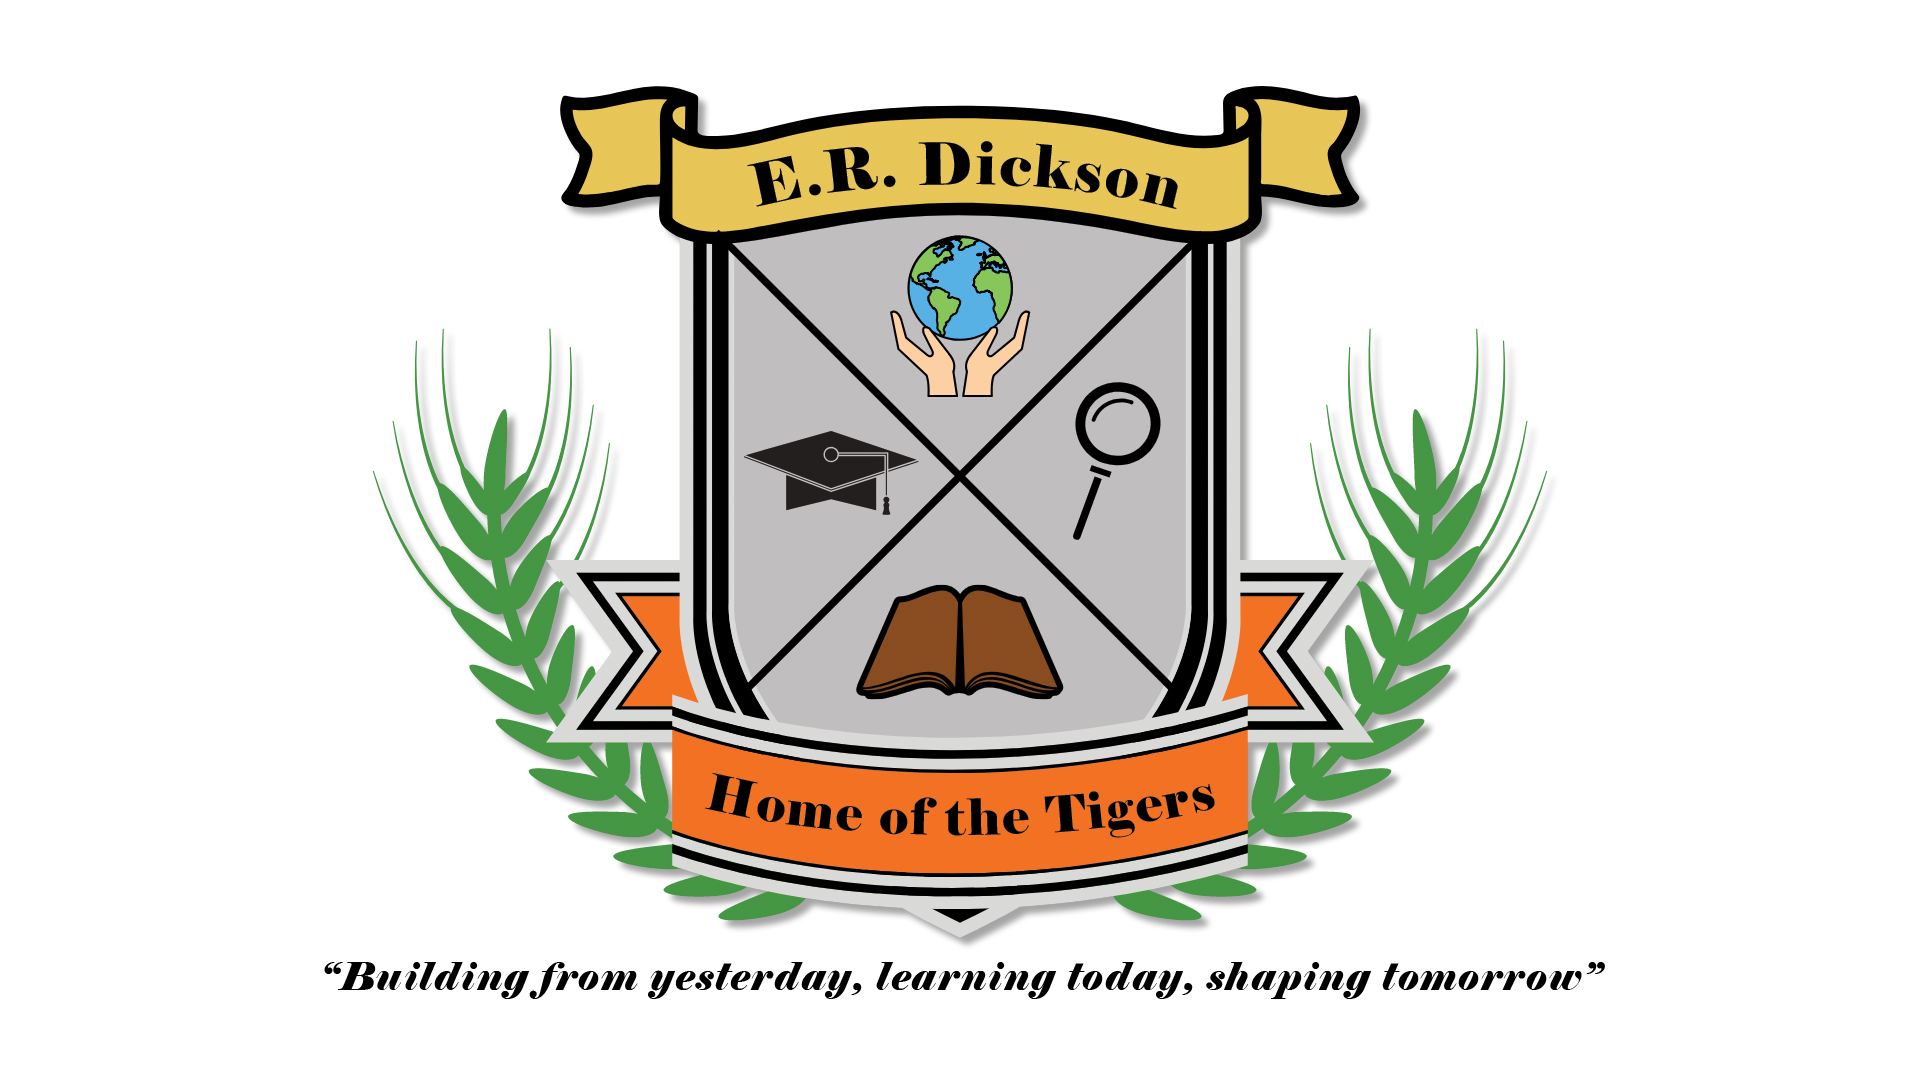 Dickson Coat of Arms